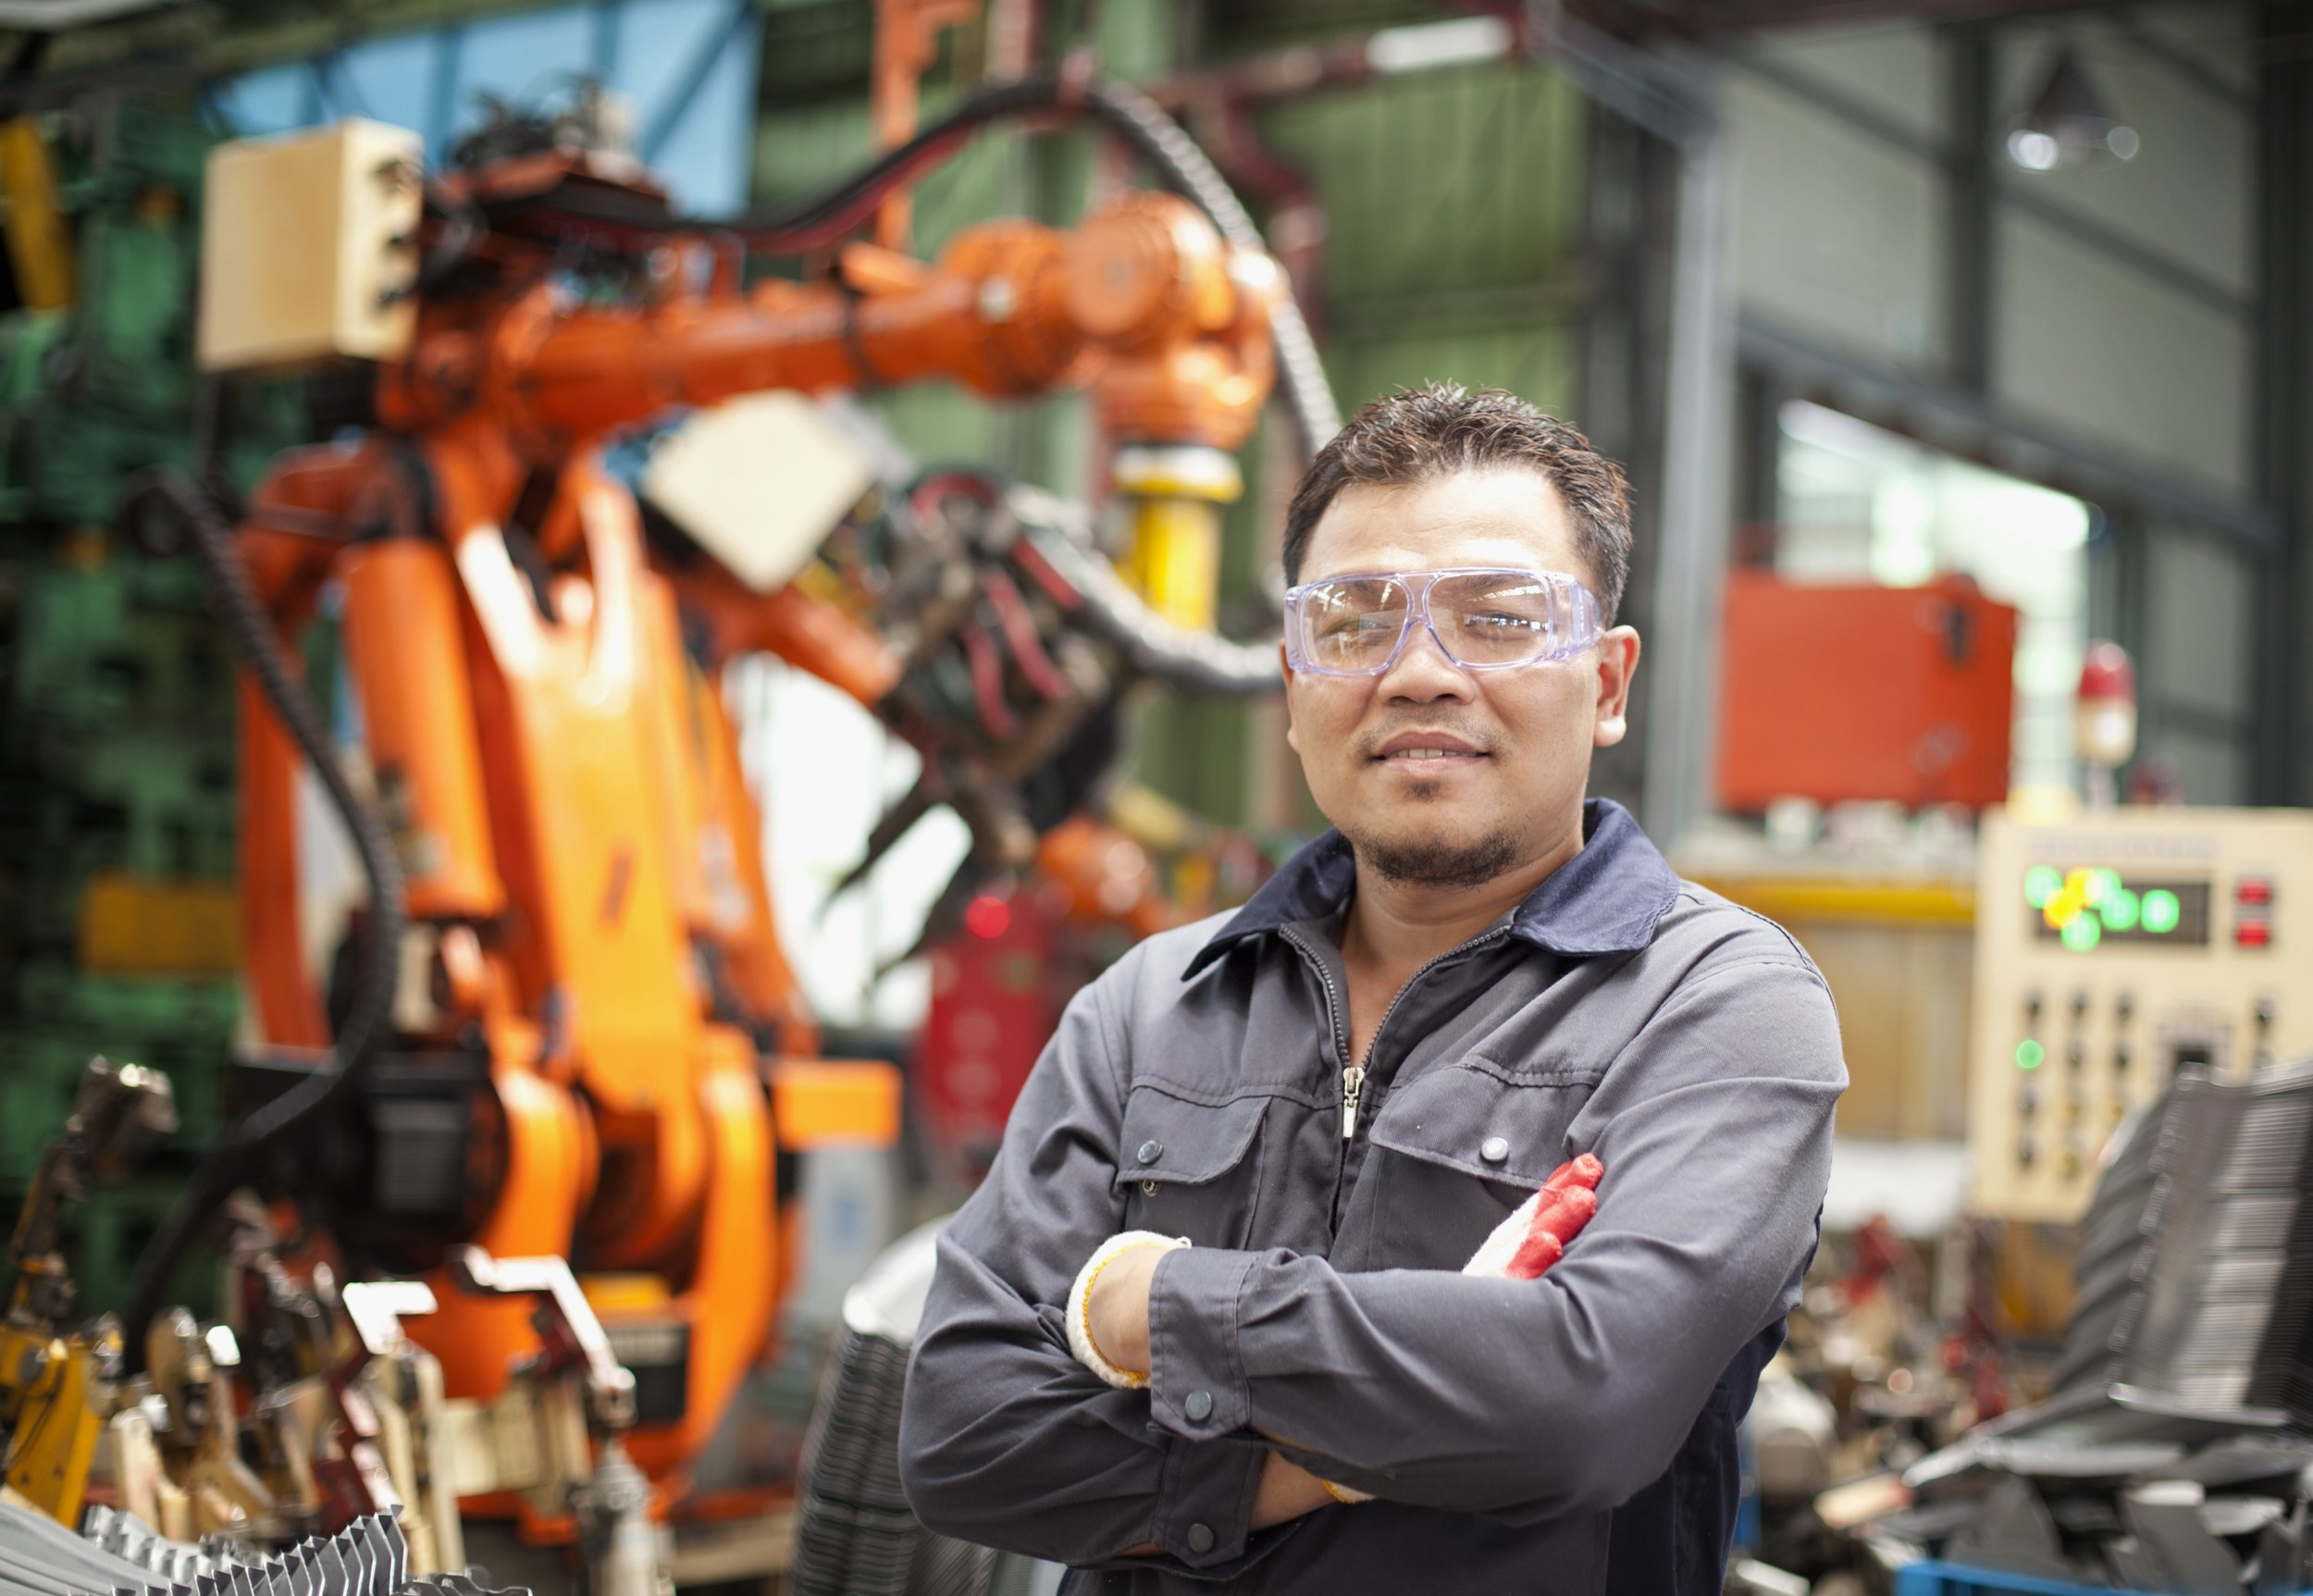 Machinery worker with robot in the background